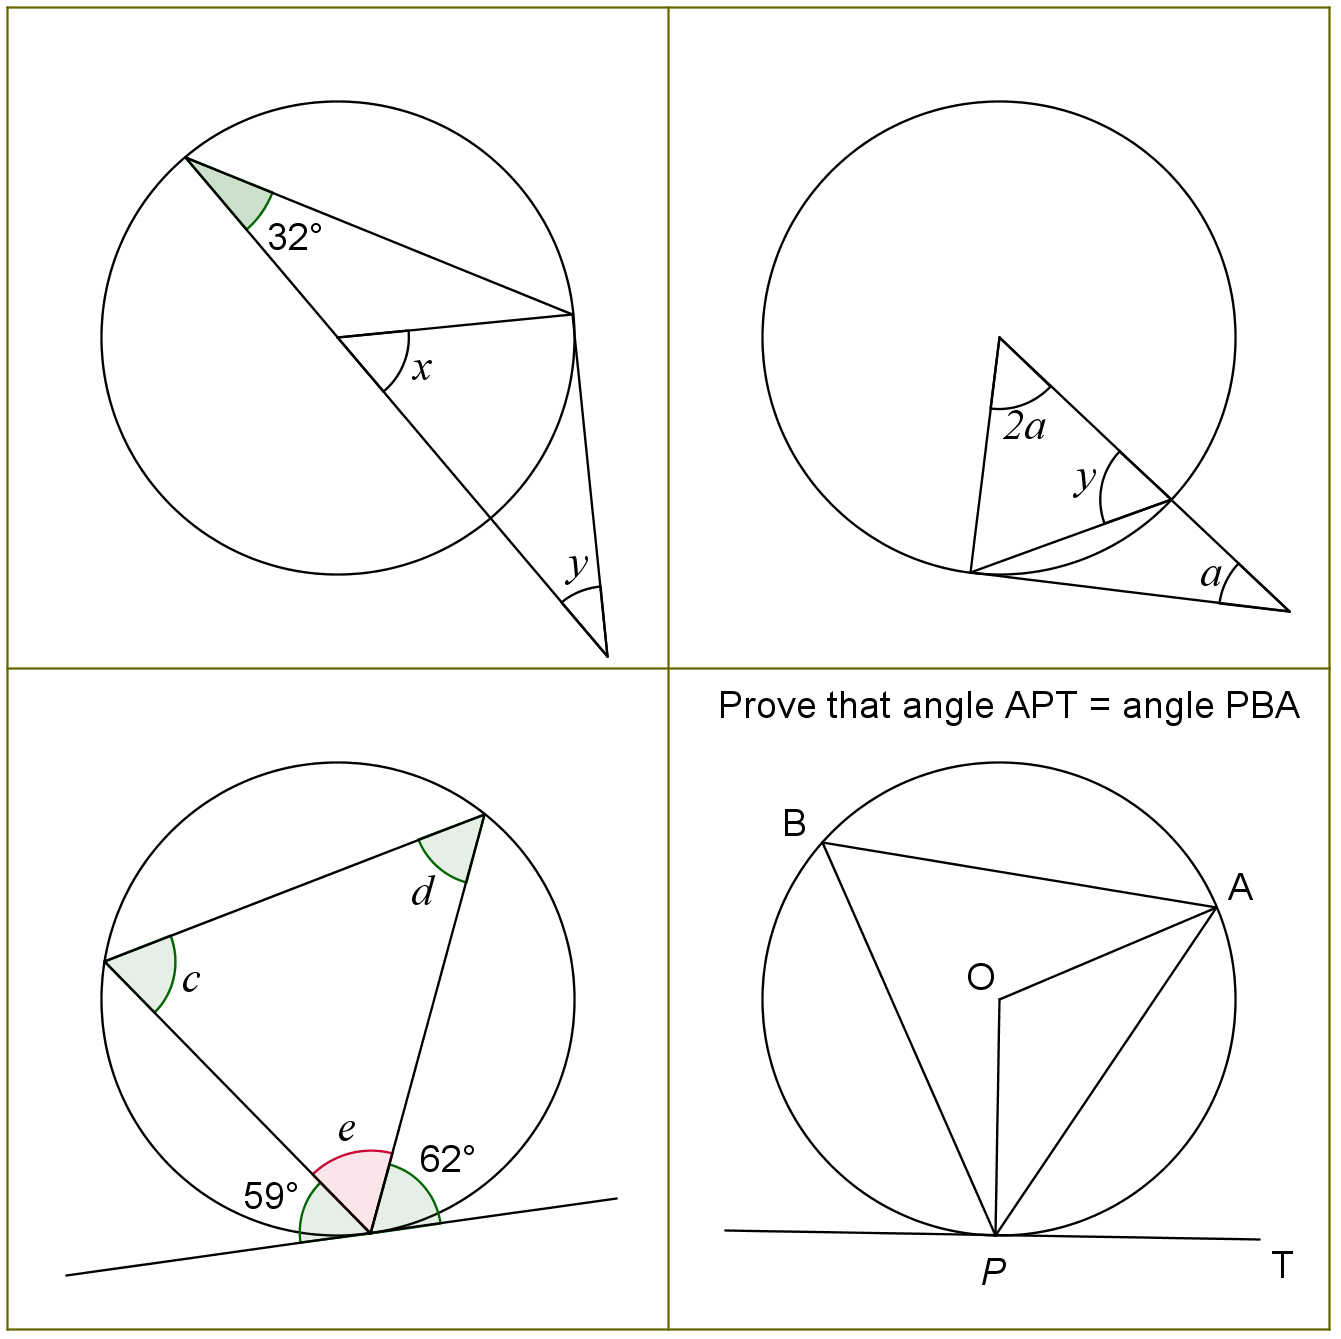 Circle Theorems 2 Questions